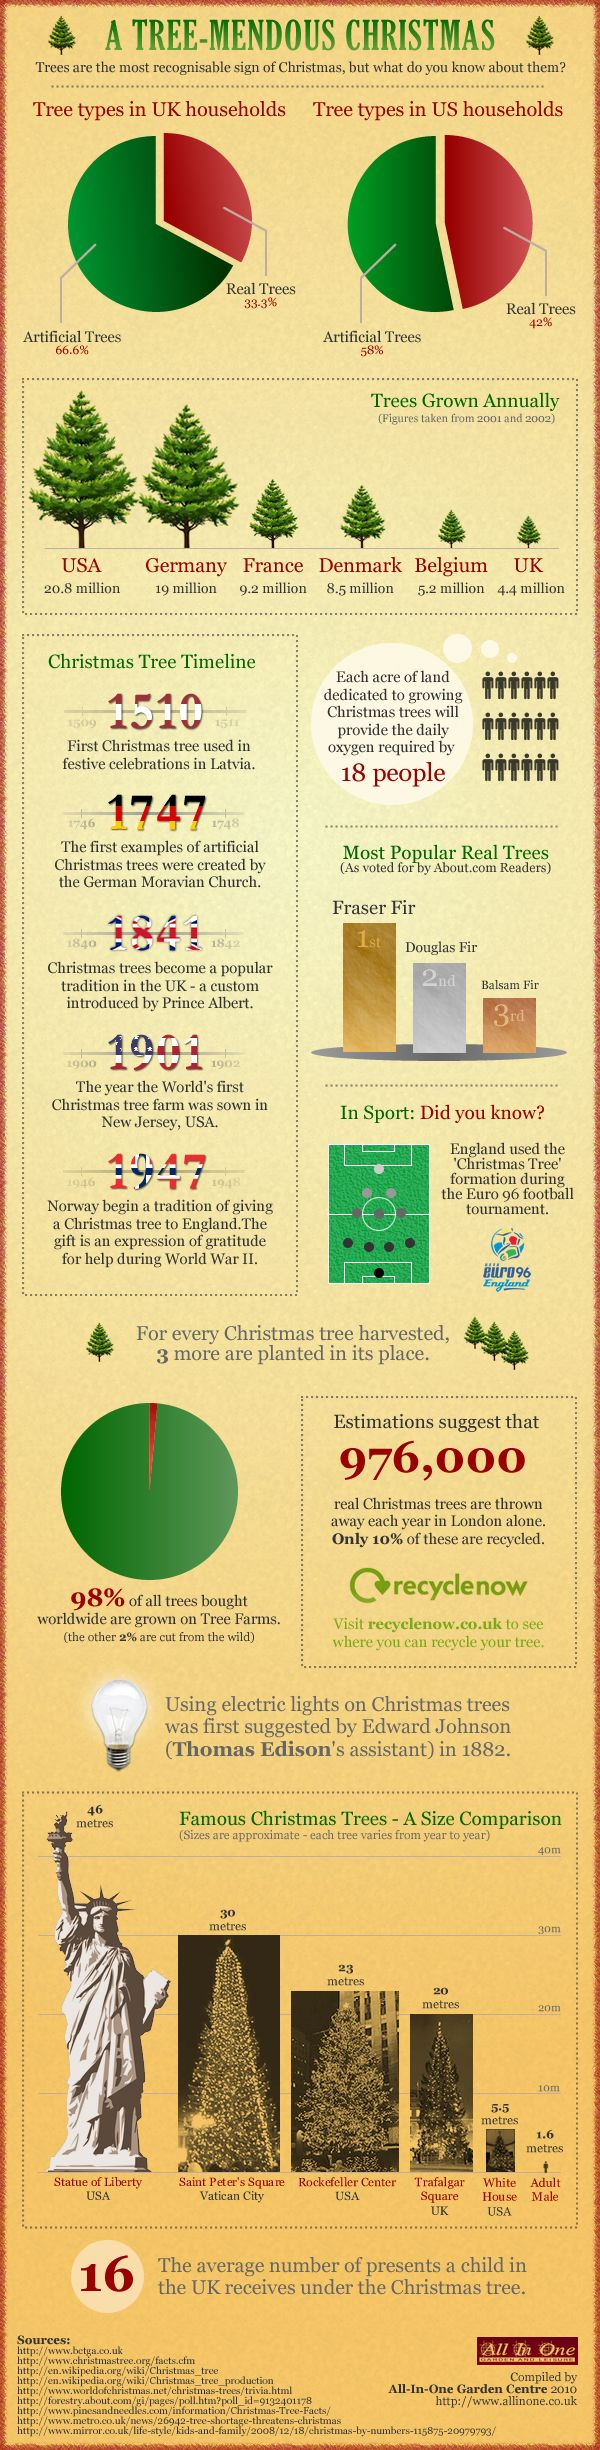 Everything You Didn't Know That You Wanted To Know About Christmas Trees